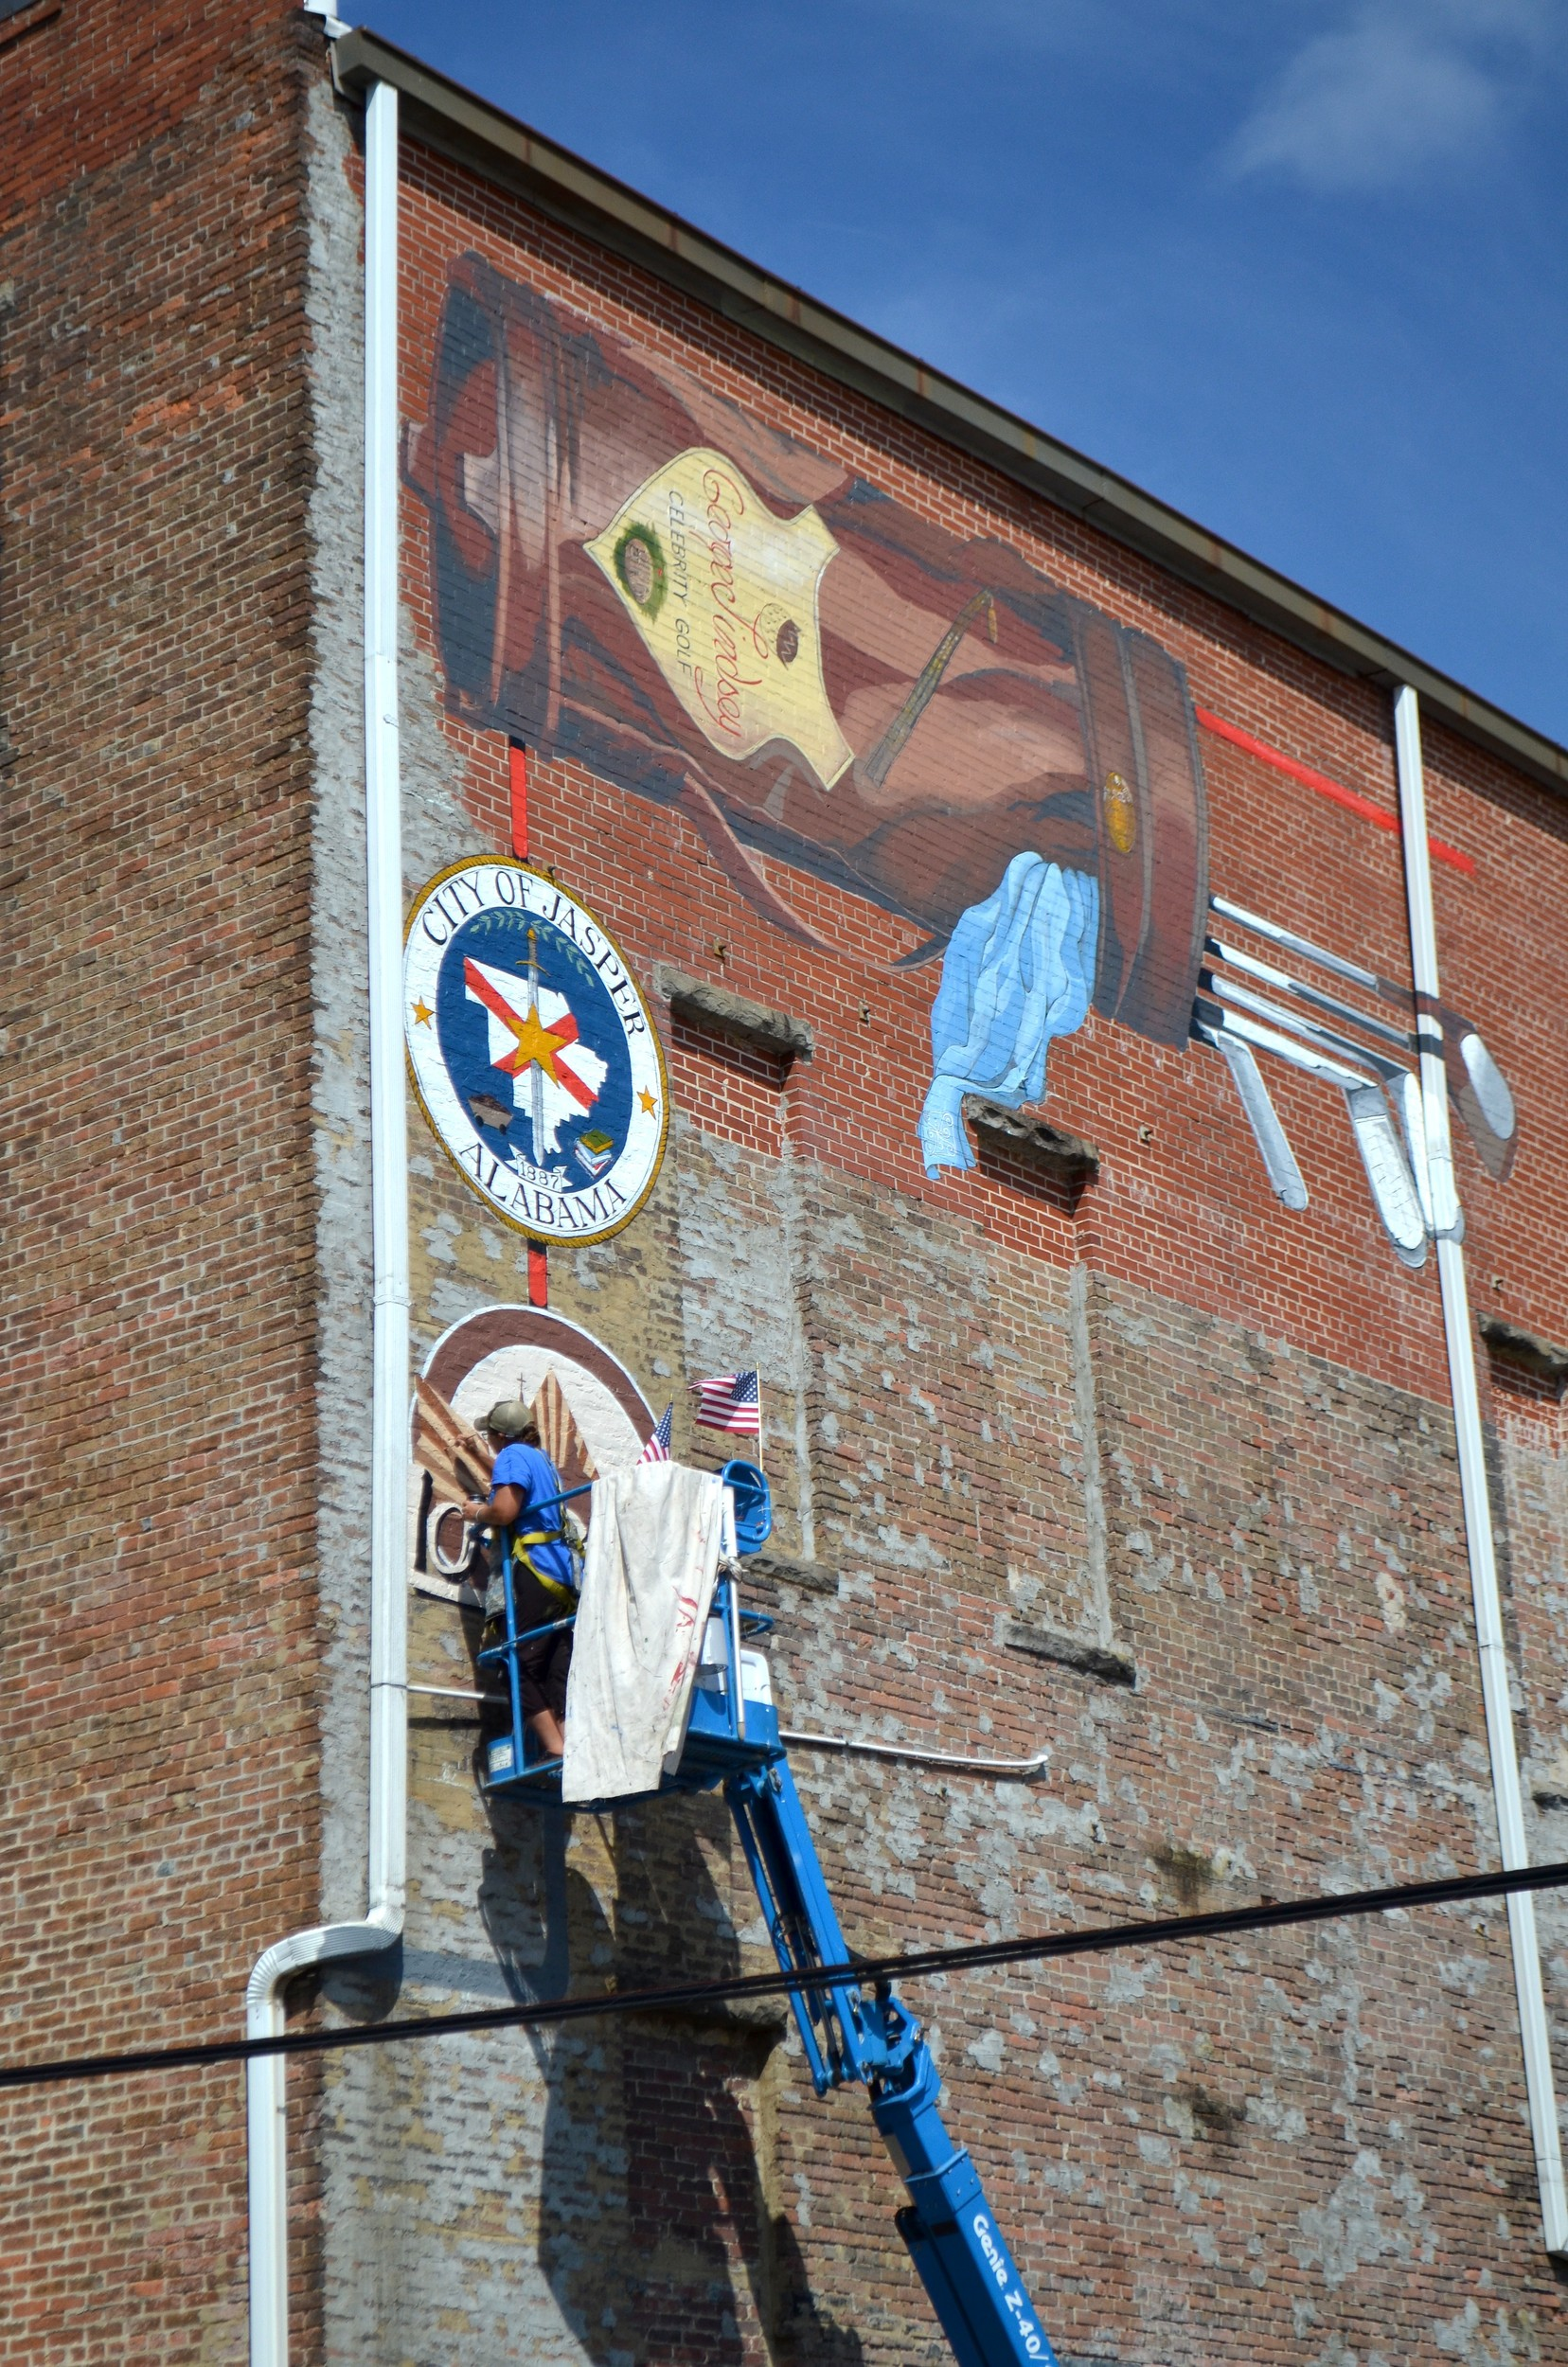 Artist Missy Miles put the finishing touches on a mural along 19th Street in downtown Jasper Wednesday that pays tribute to Burton Manufacturing Co., a business that used to be located in Jasper to produce golf bags and other items. It is her tallest mural to date and her fourth in Jasper.